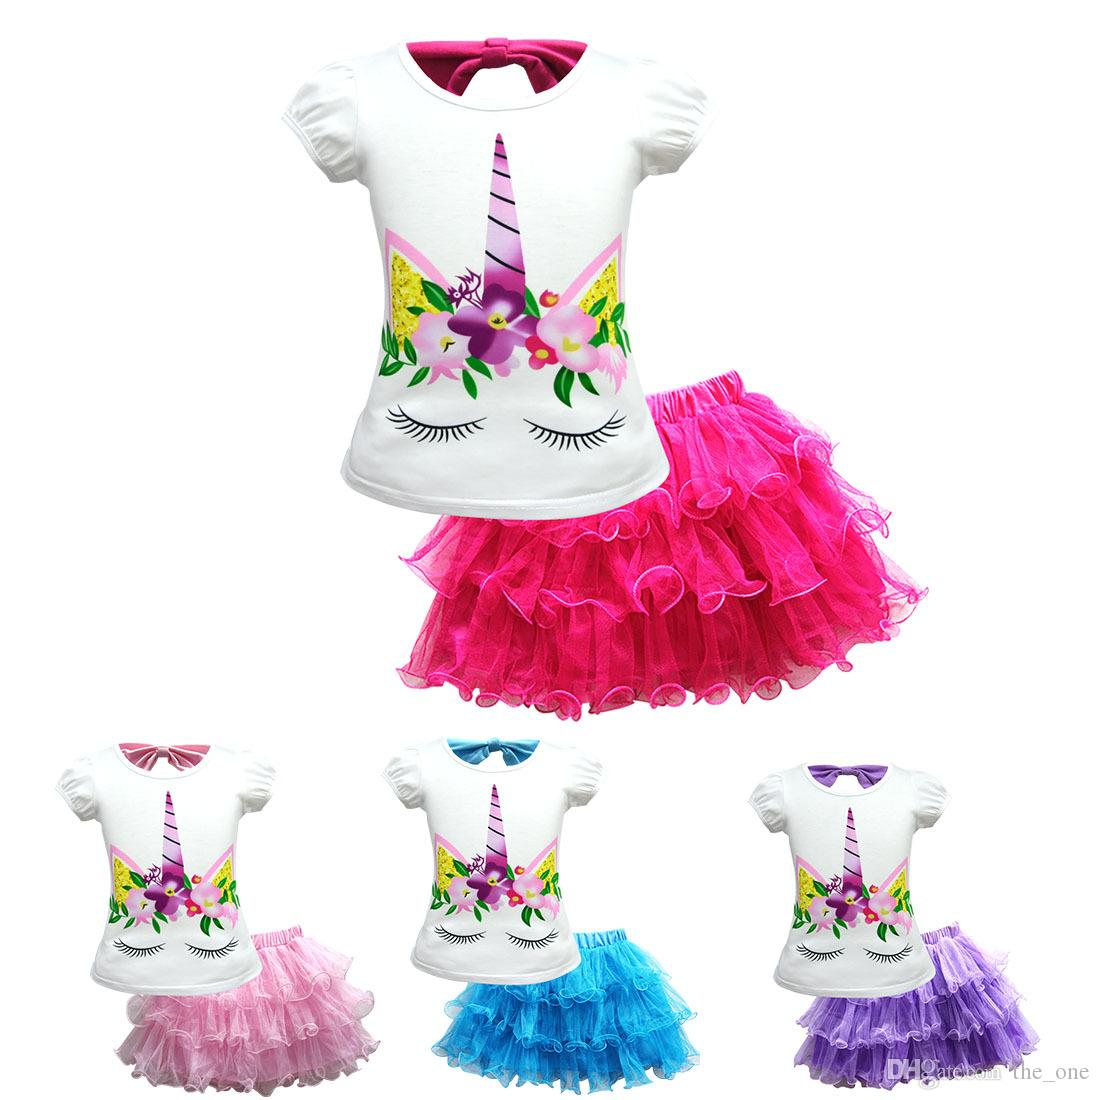 cc6d0689284 2019 New Unicorn Suit Girls Short Sleeved T Shirt Two Piece Children S Mesh  Dress Suit Unicorn Party Supplies Baby Girl Clothes From The one